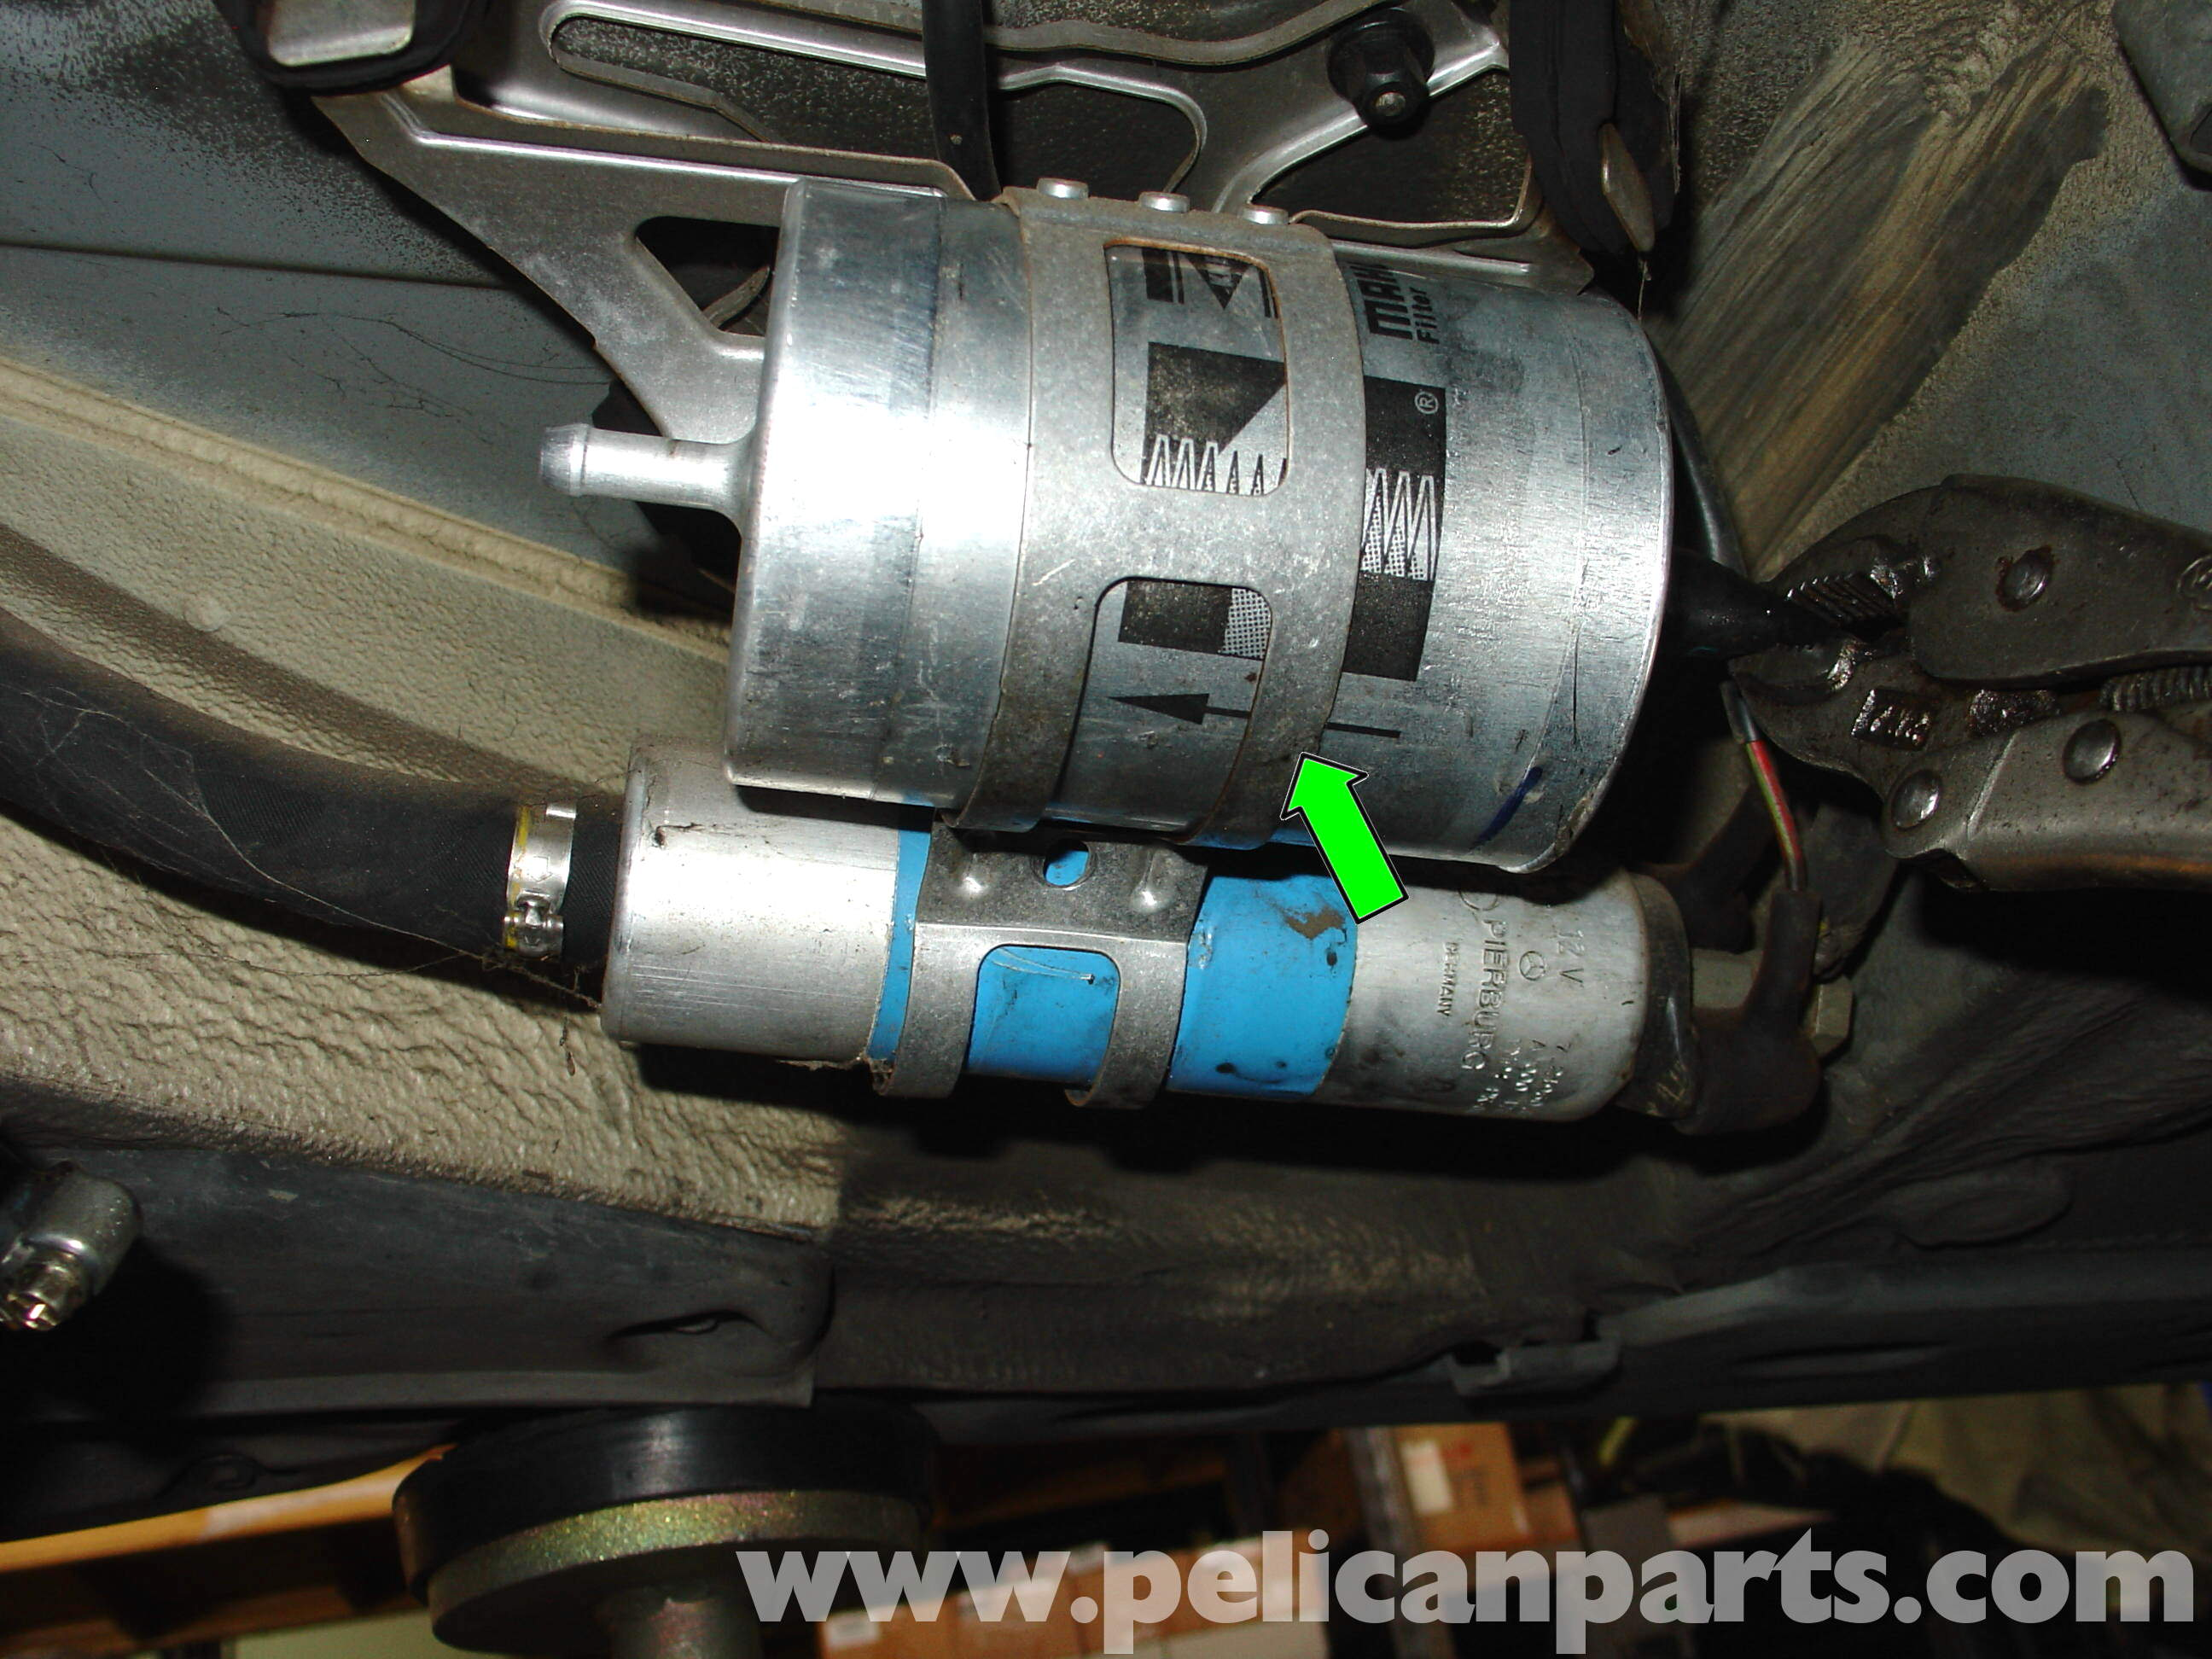 1999 Mercedes E320 Problems 1997 C280 Engine Diagram Benz Class E Fuel Filter Replacement 2592x1944